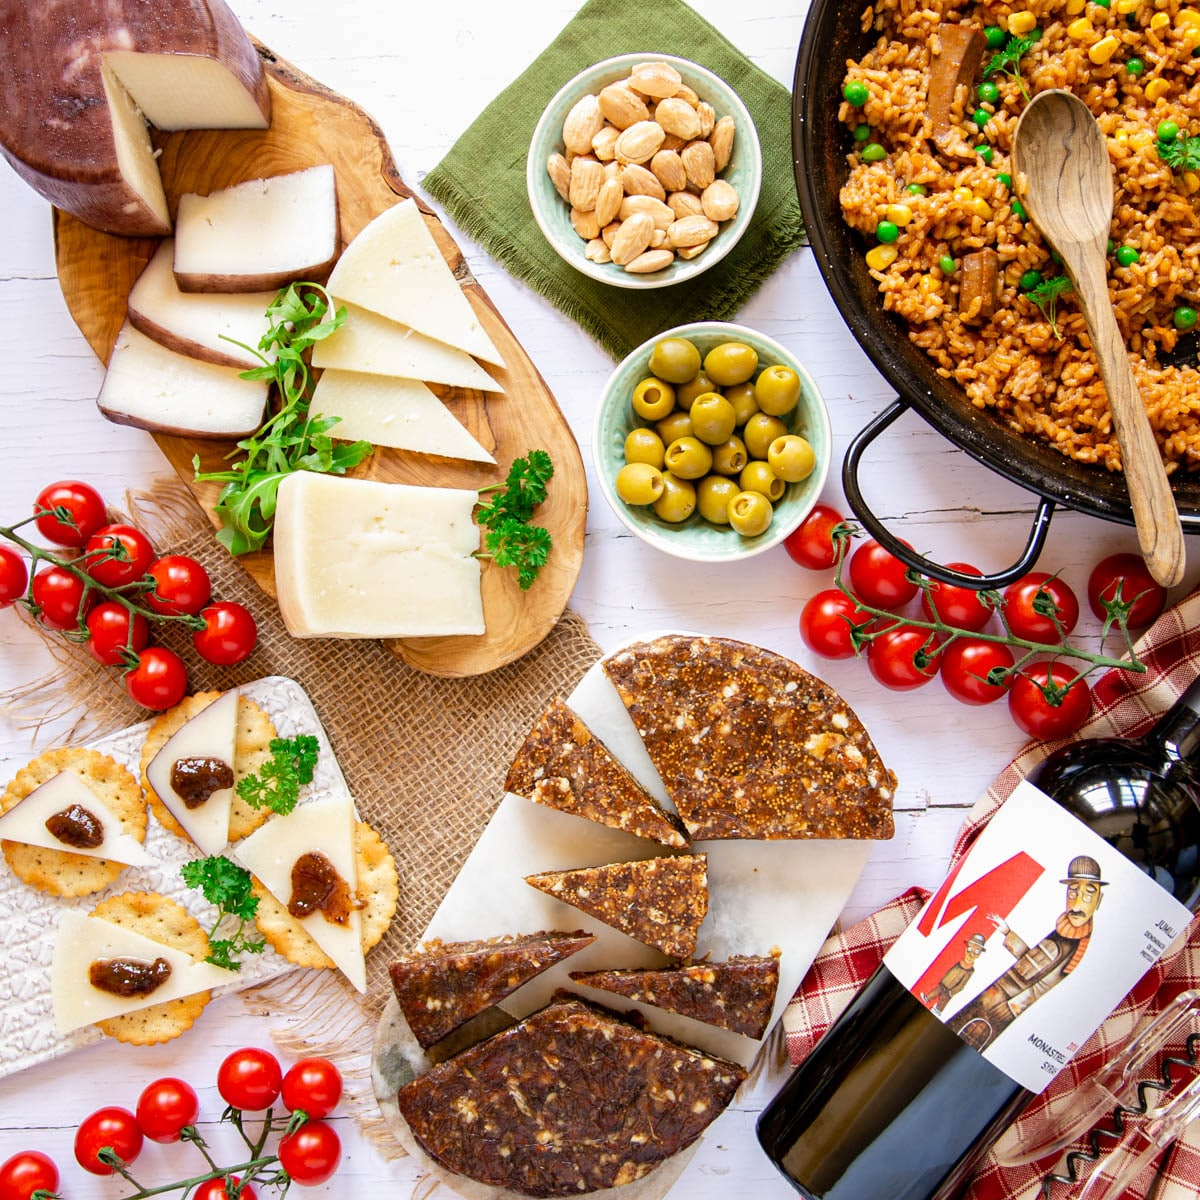 Top down of prepared food products from Murcia - sliced cheese, prepared paella, wine, nuts, olives, sliced dried fruit cakes.